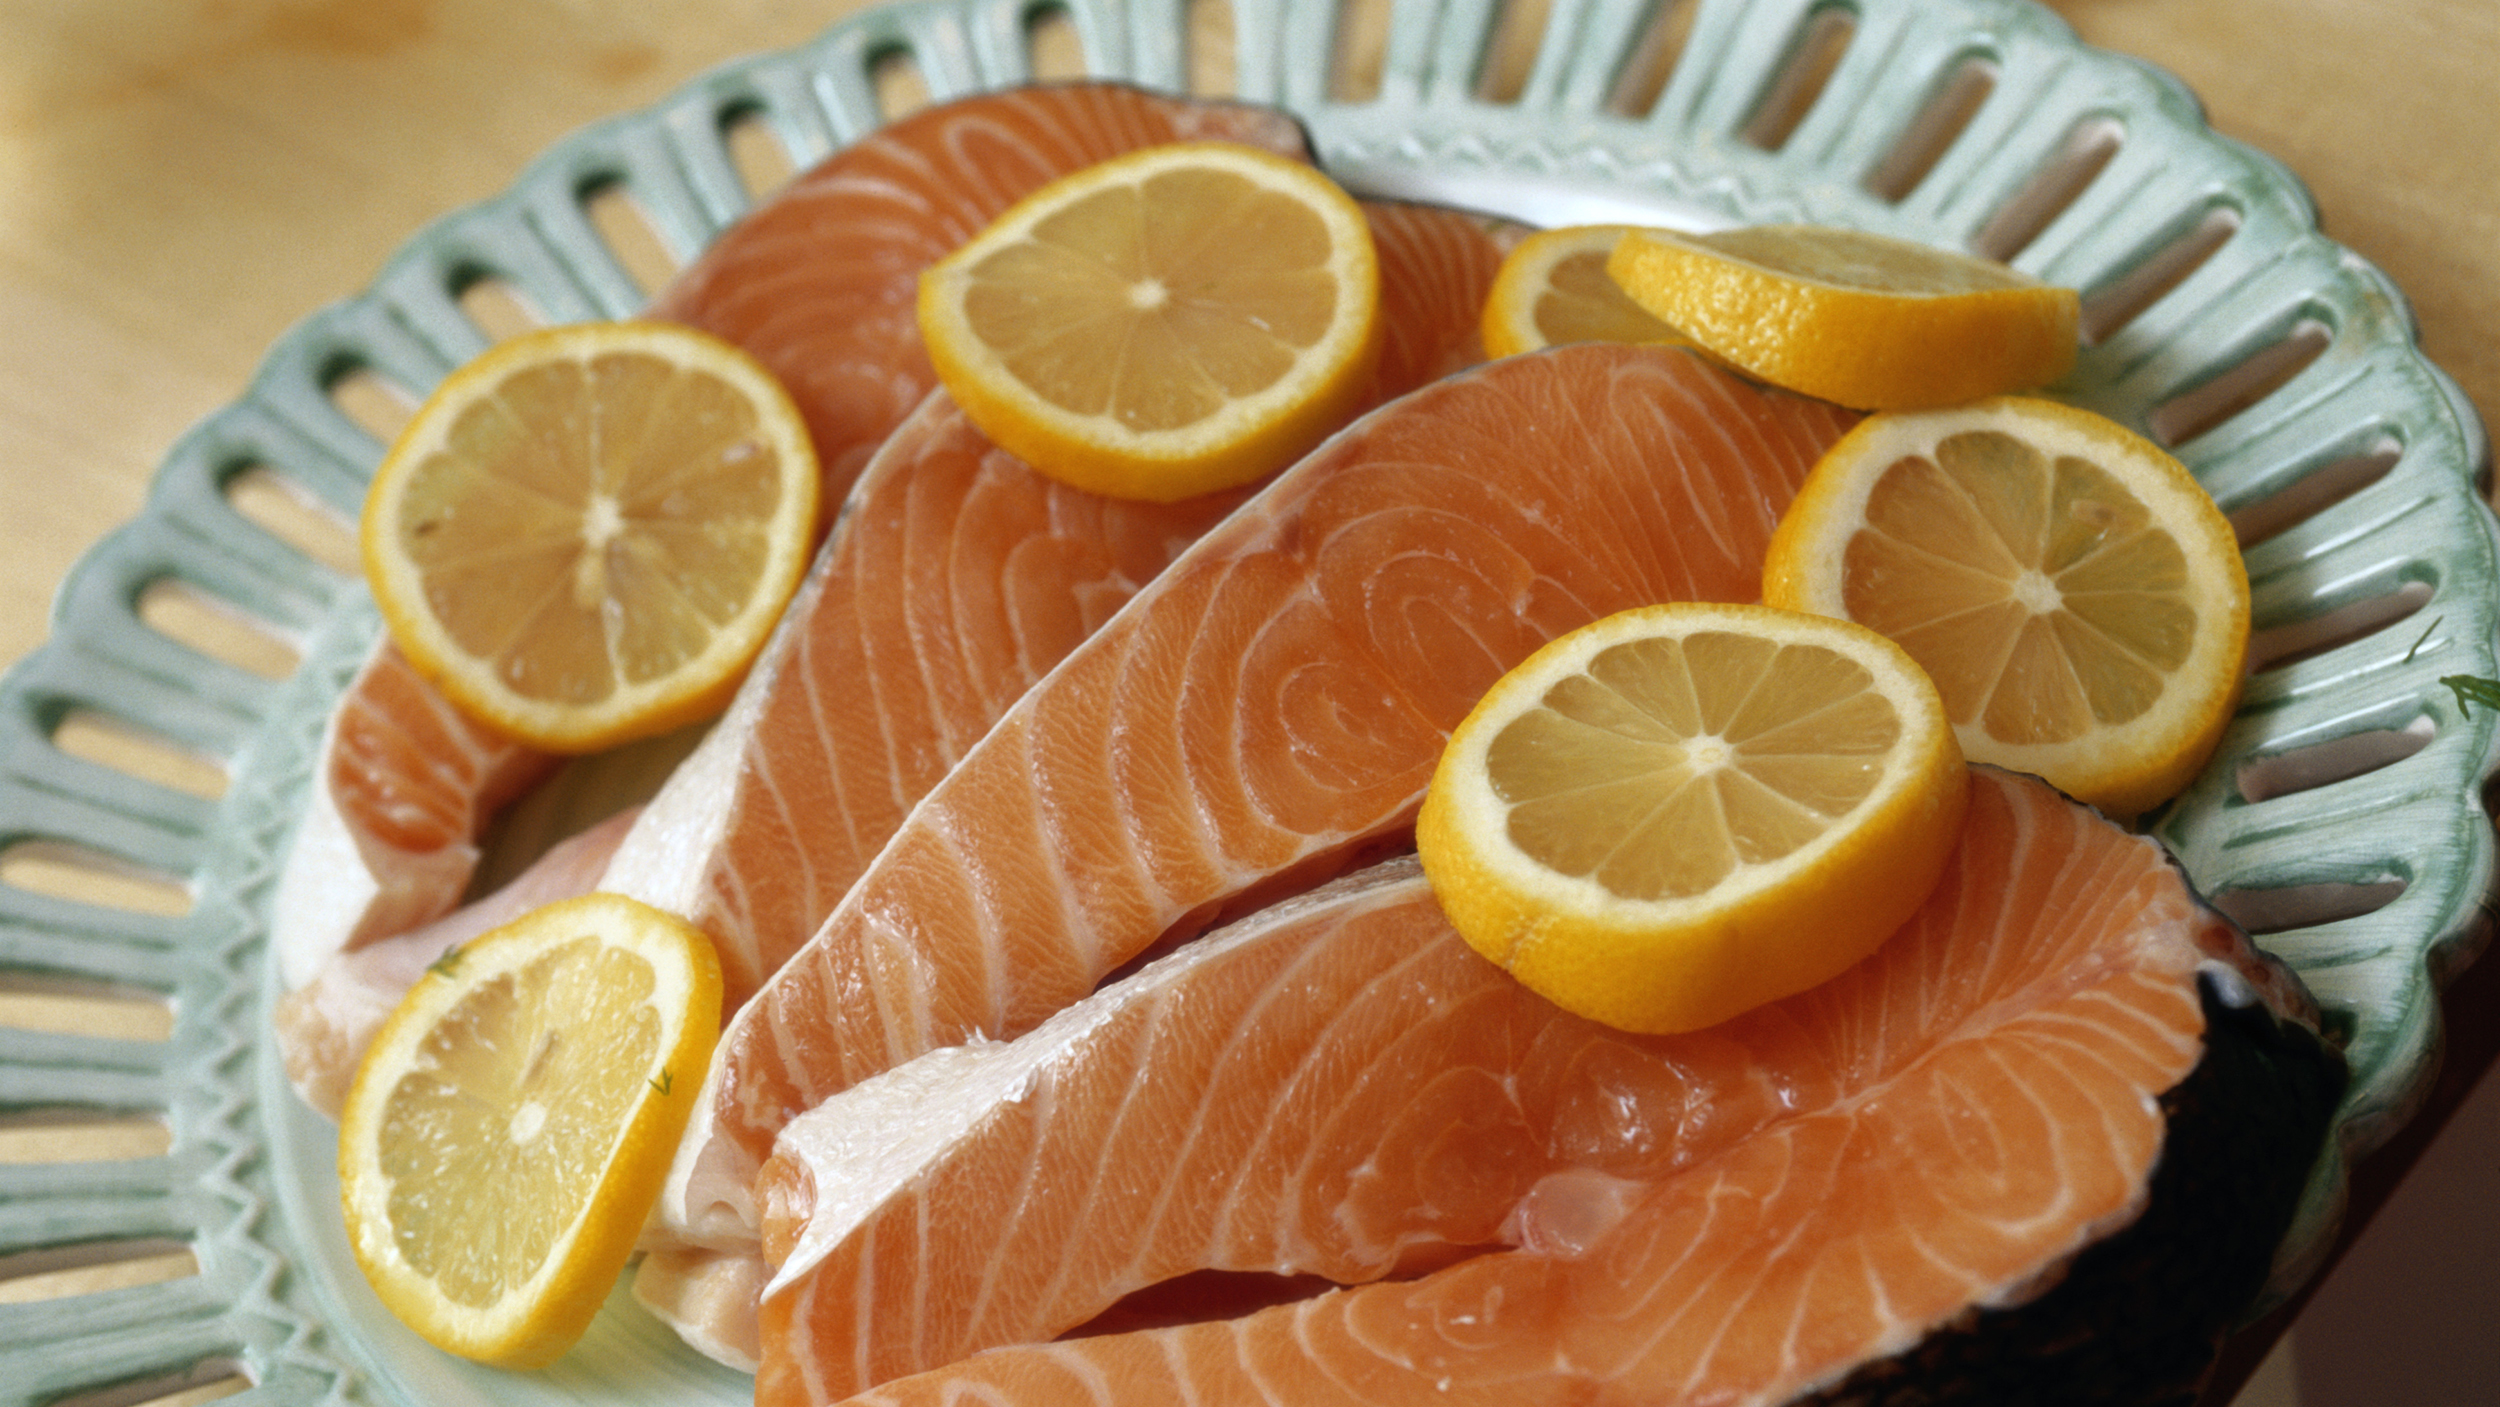 Pregnant women should eat more fish fda says for Fish not to eat when pregnant